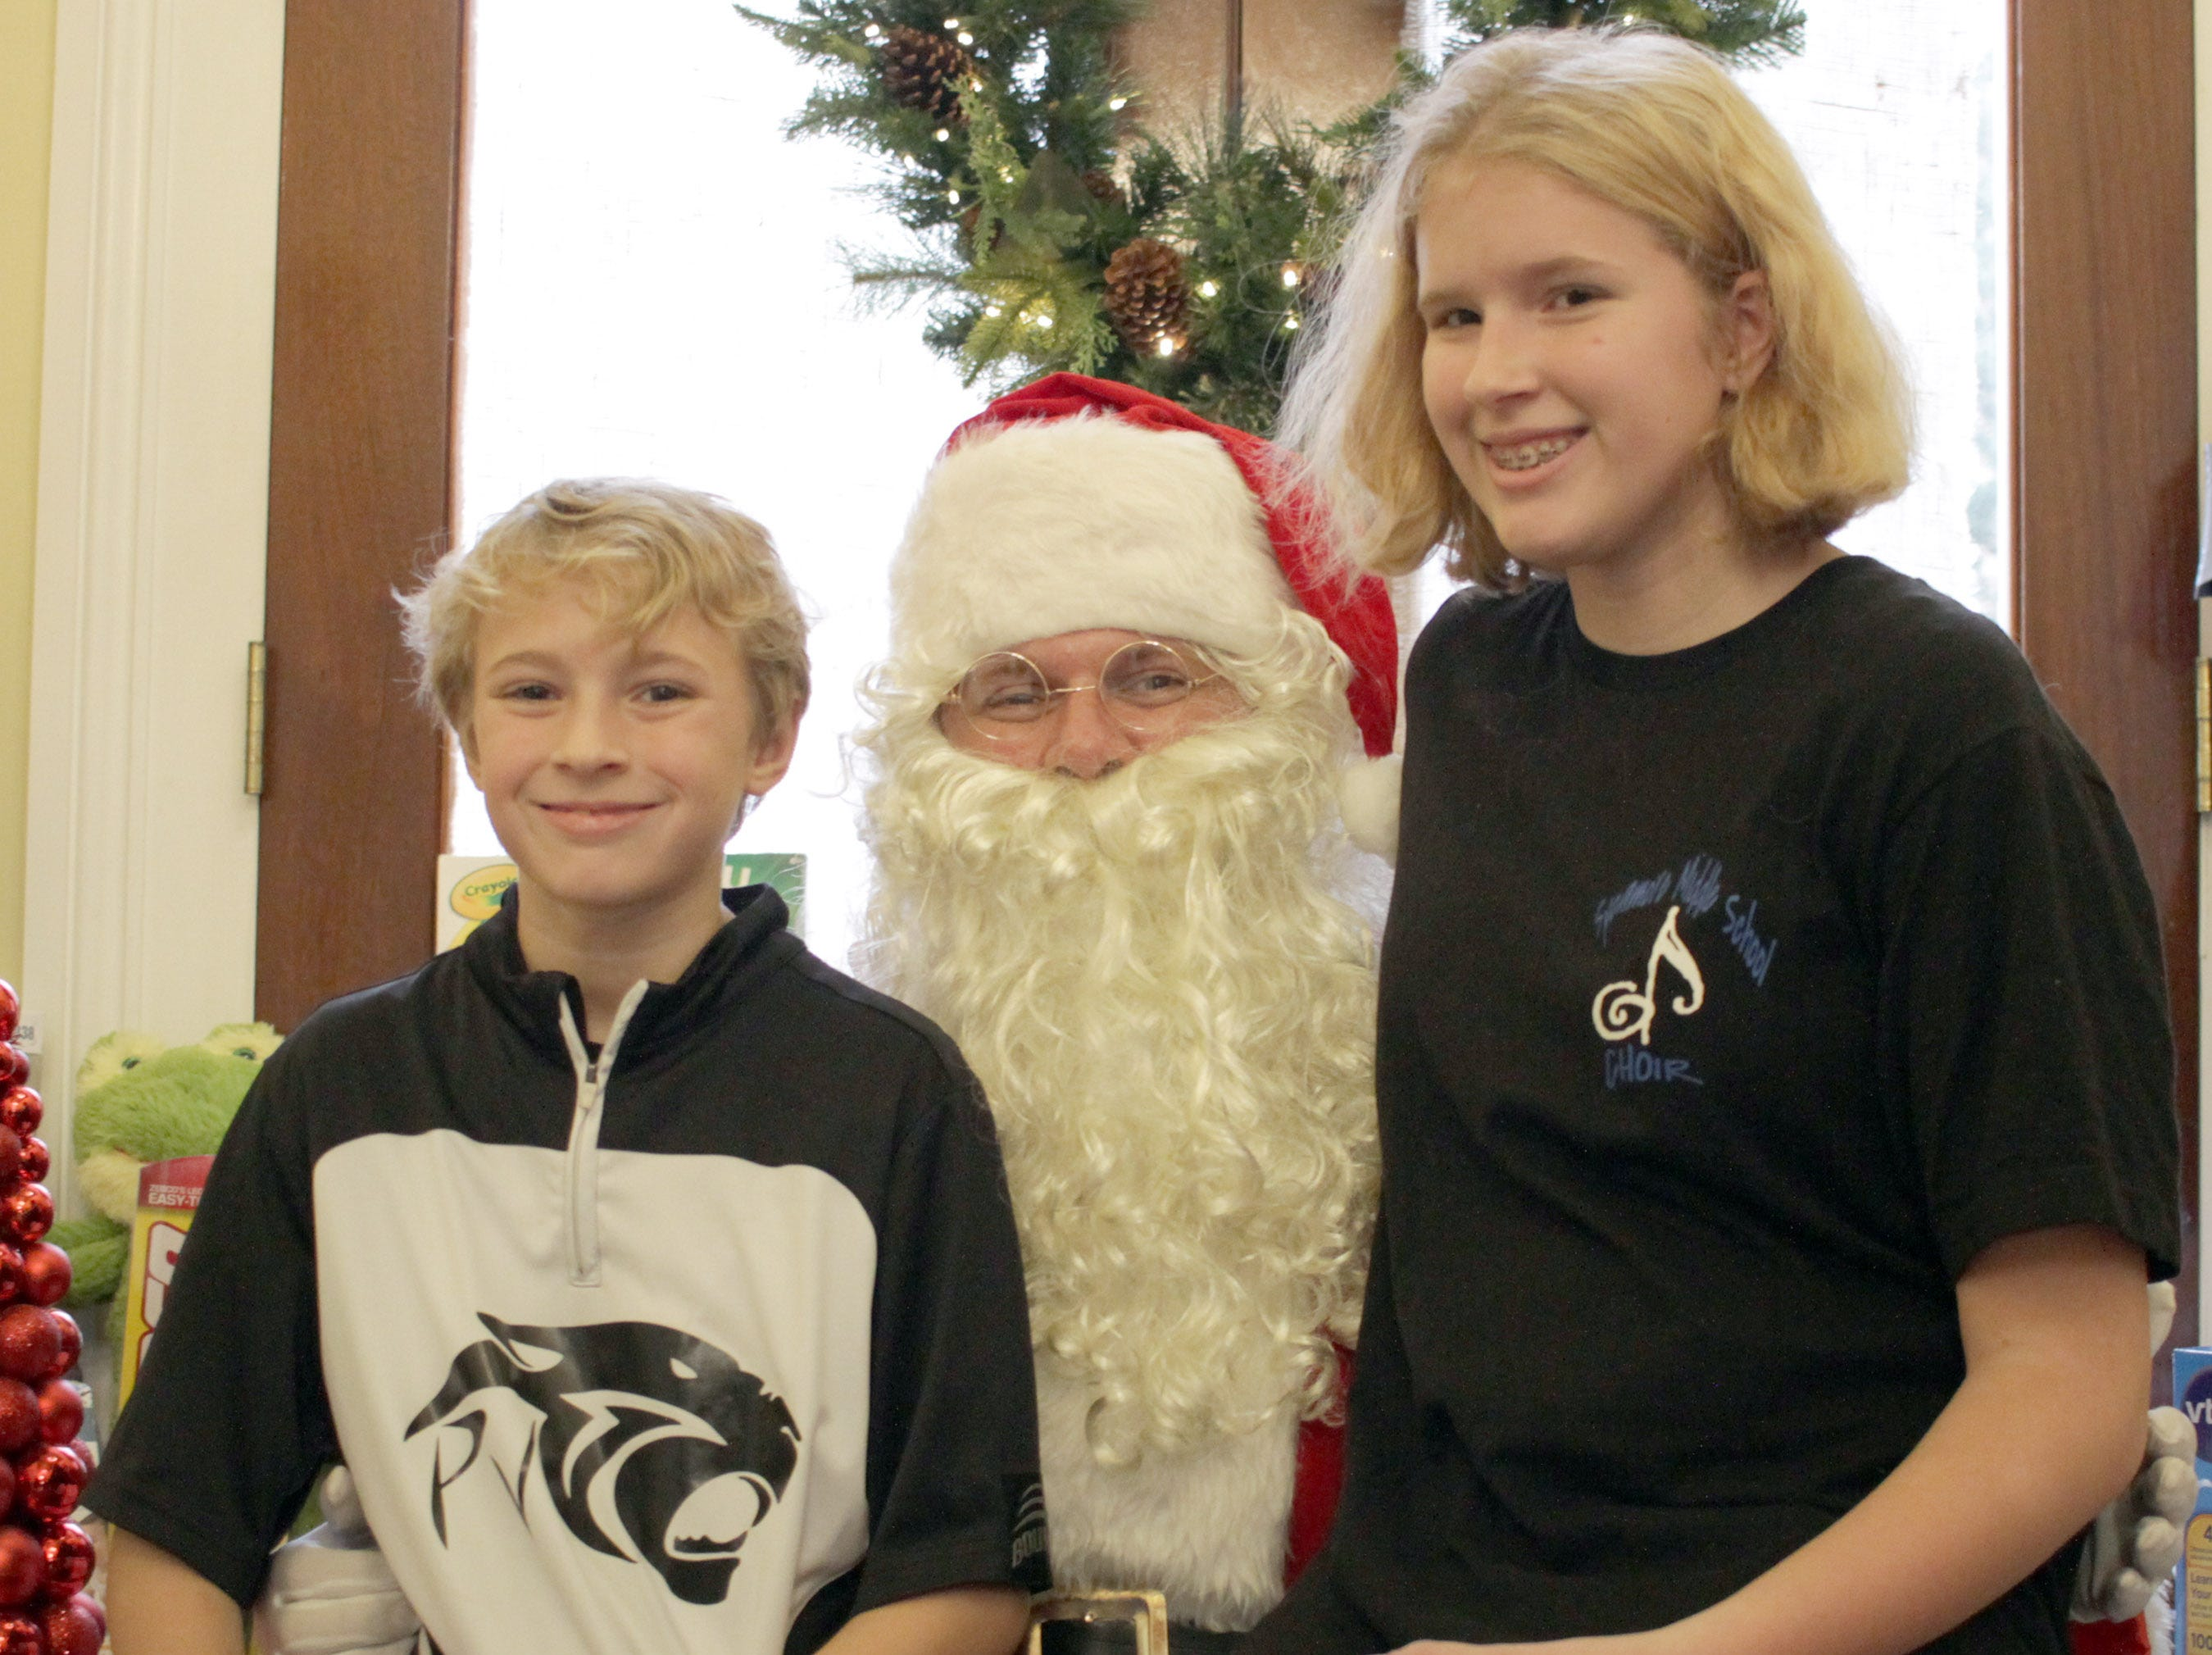 L-R Mac and Alyssa Gagnon visit with Santa in Ashland City, TENN on Saturday, December 1, 2018.